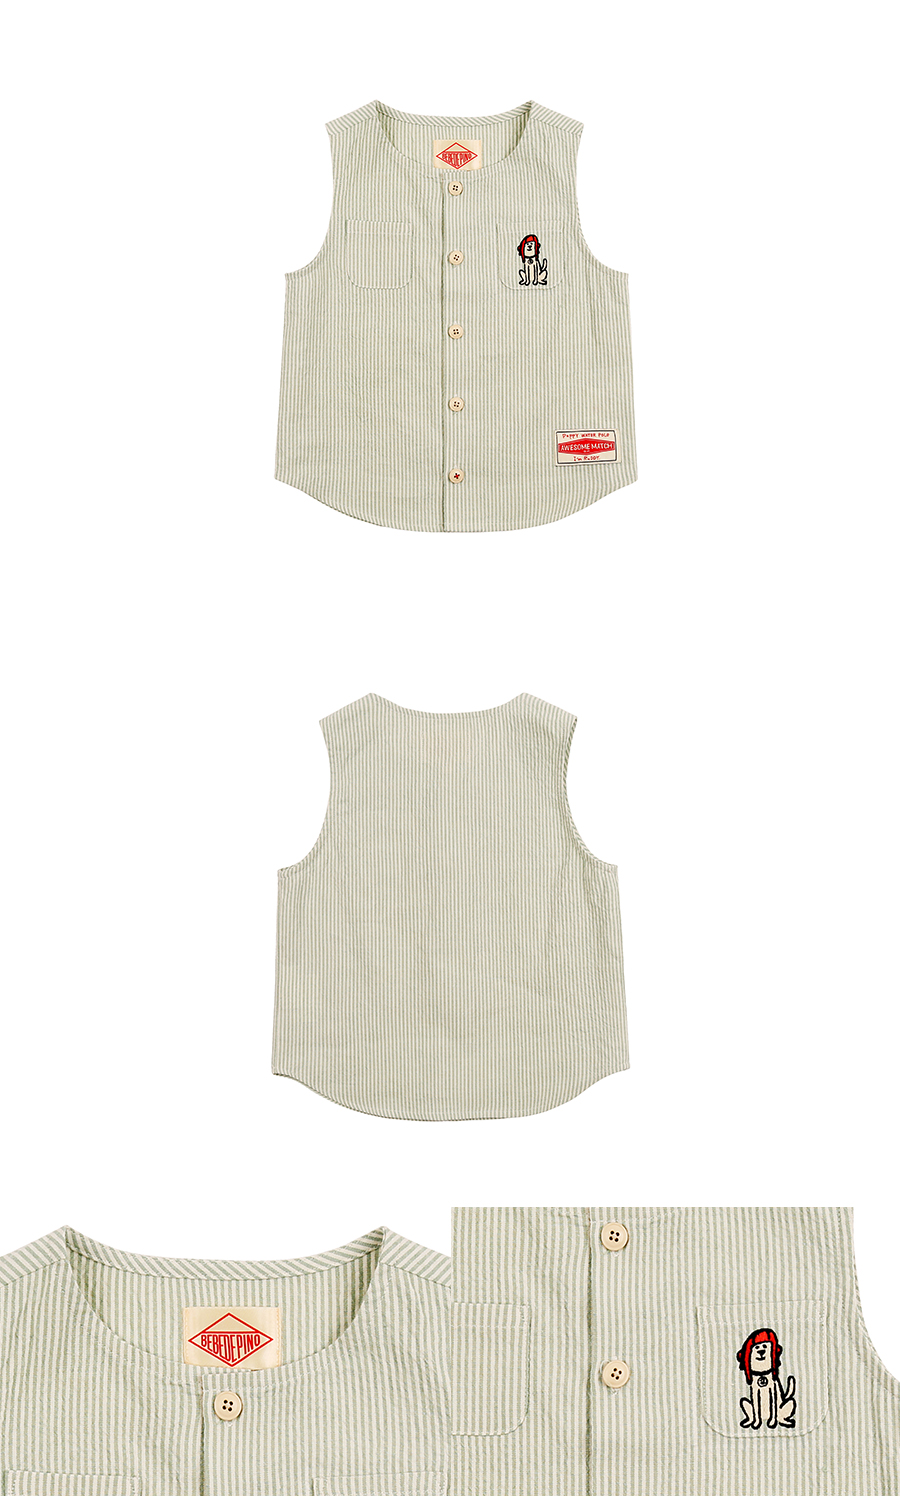 Puppy baby stripe sleeveless shirt 상세 이미지